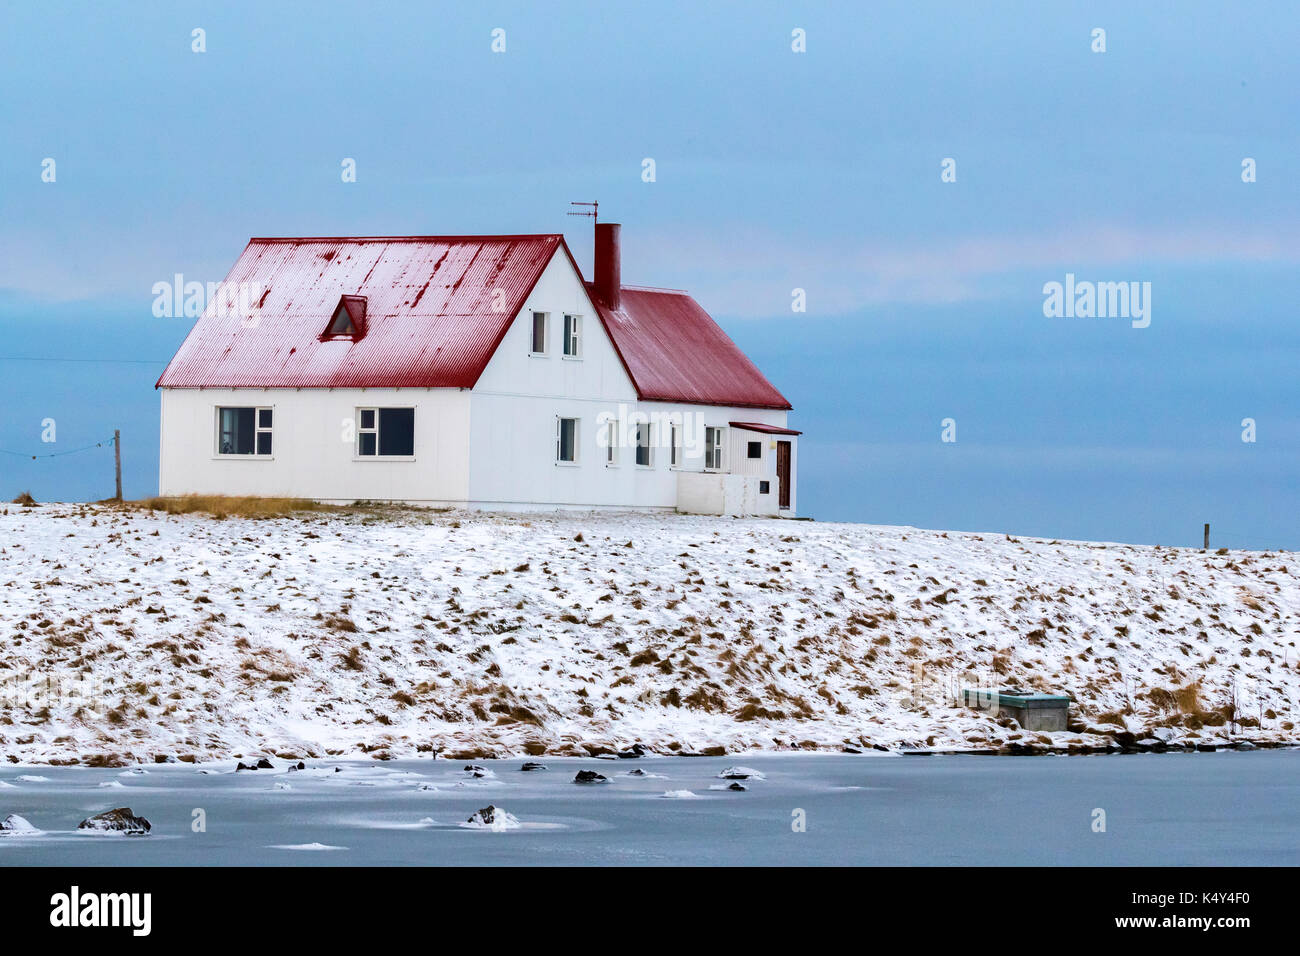 Weisses Haus Mit Rotem Dach In Blikalon Island Stockfoto